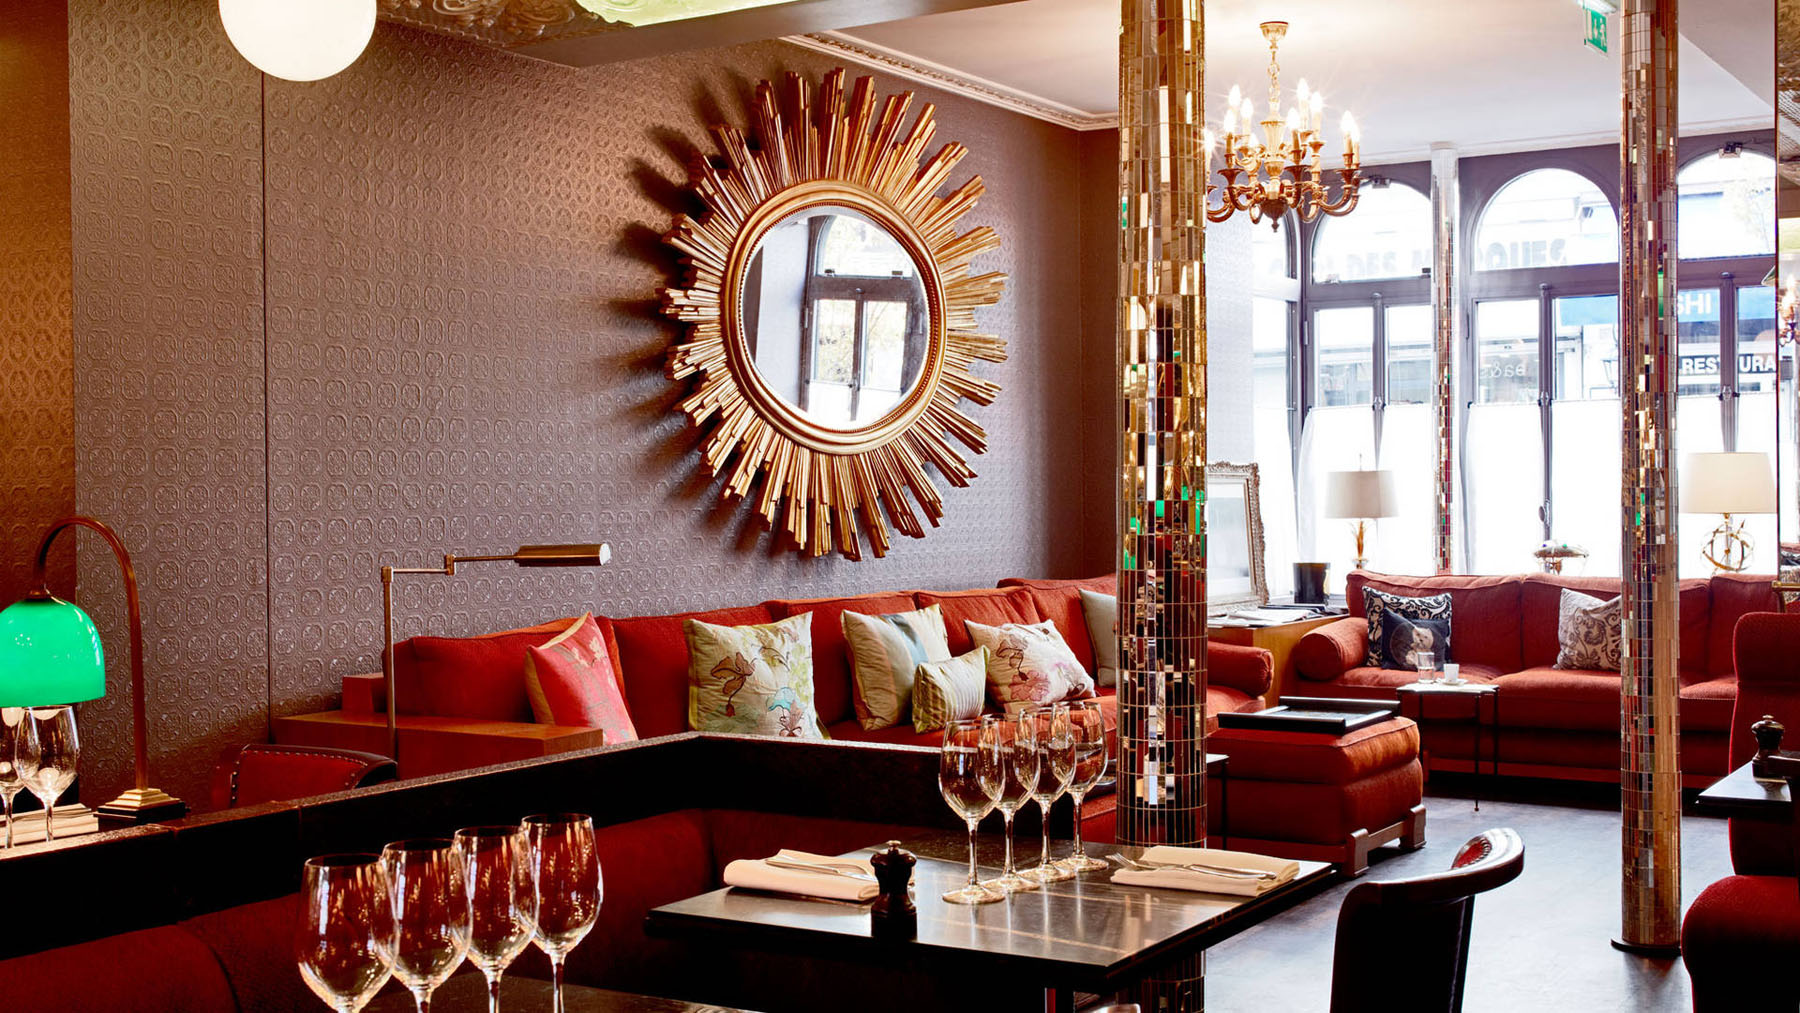 French art deco interior design by india mahdavi at hotel for Design hotel paris 11